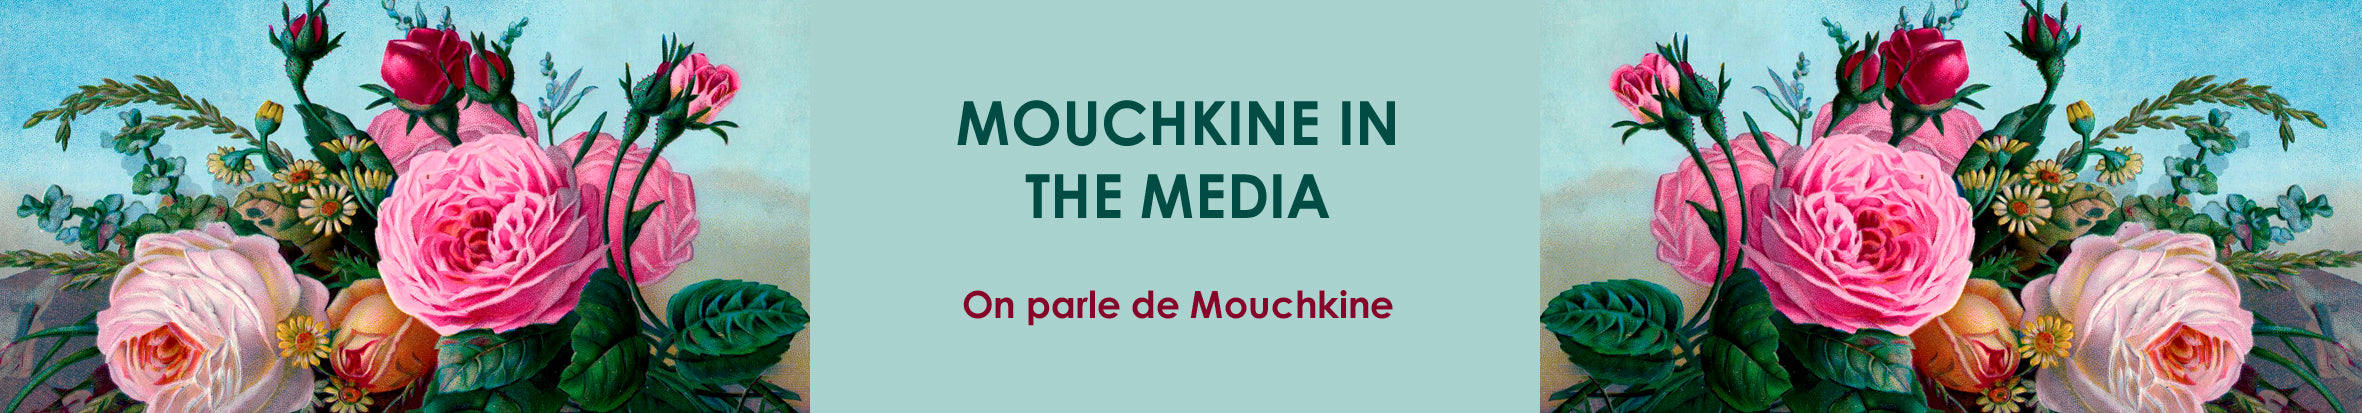 mouchkine jewerly creations in the medias - les bijoux mouchkine dans la presse, articles de magasines.